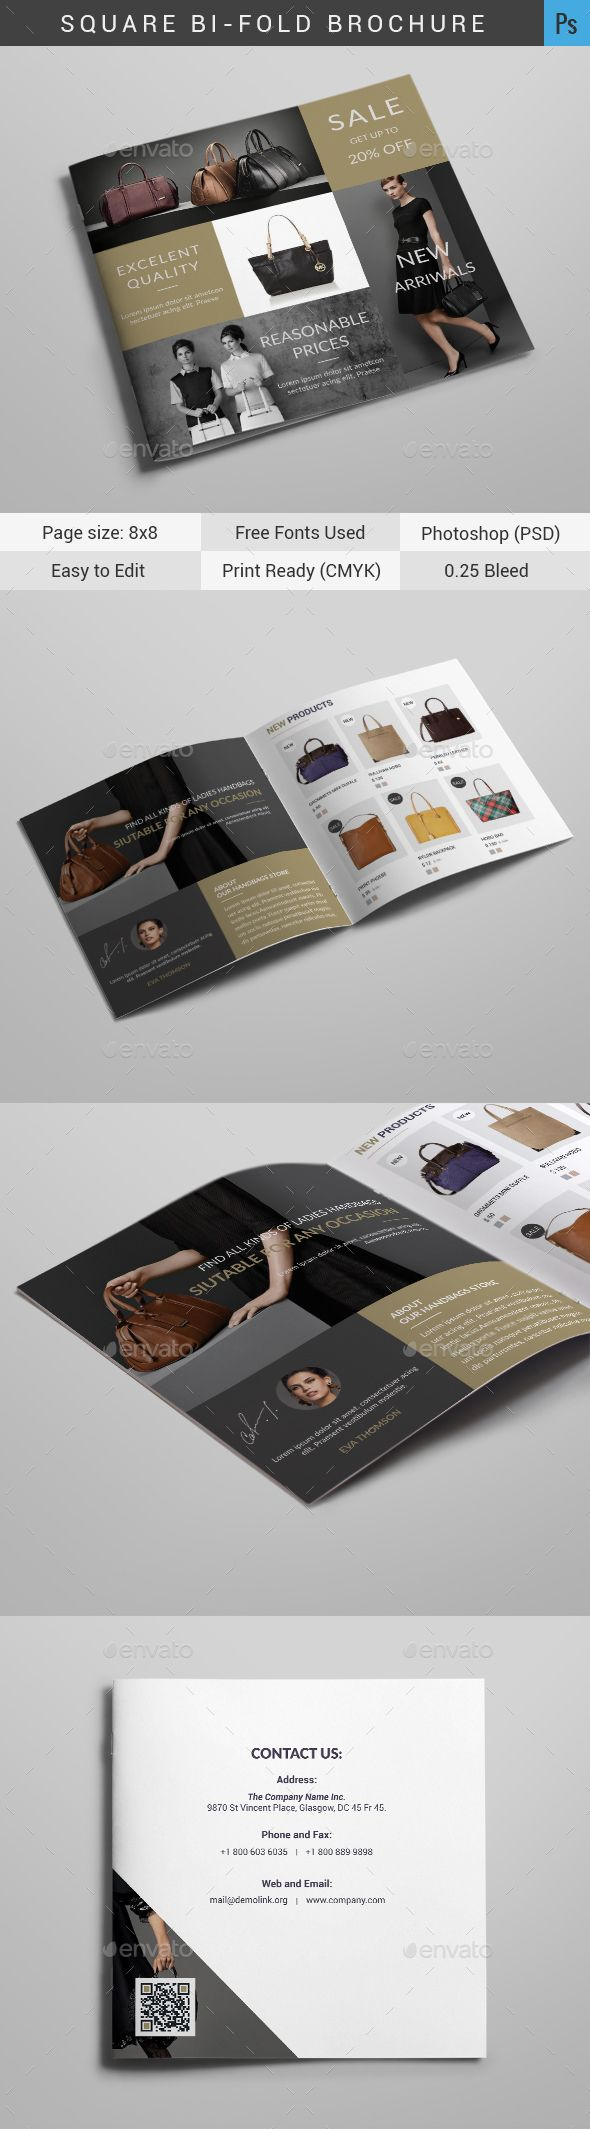 Pin By Best Graphic Design On Brochure Templates